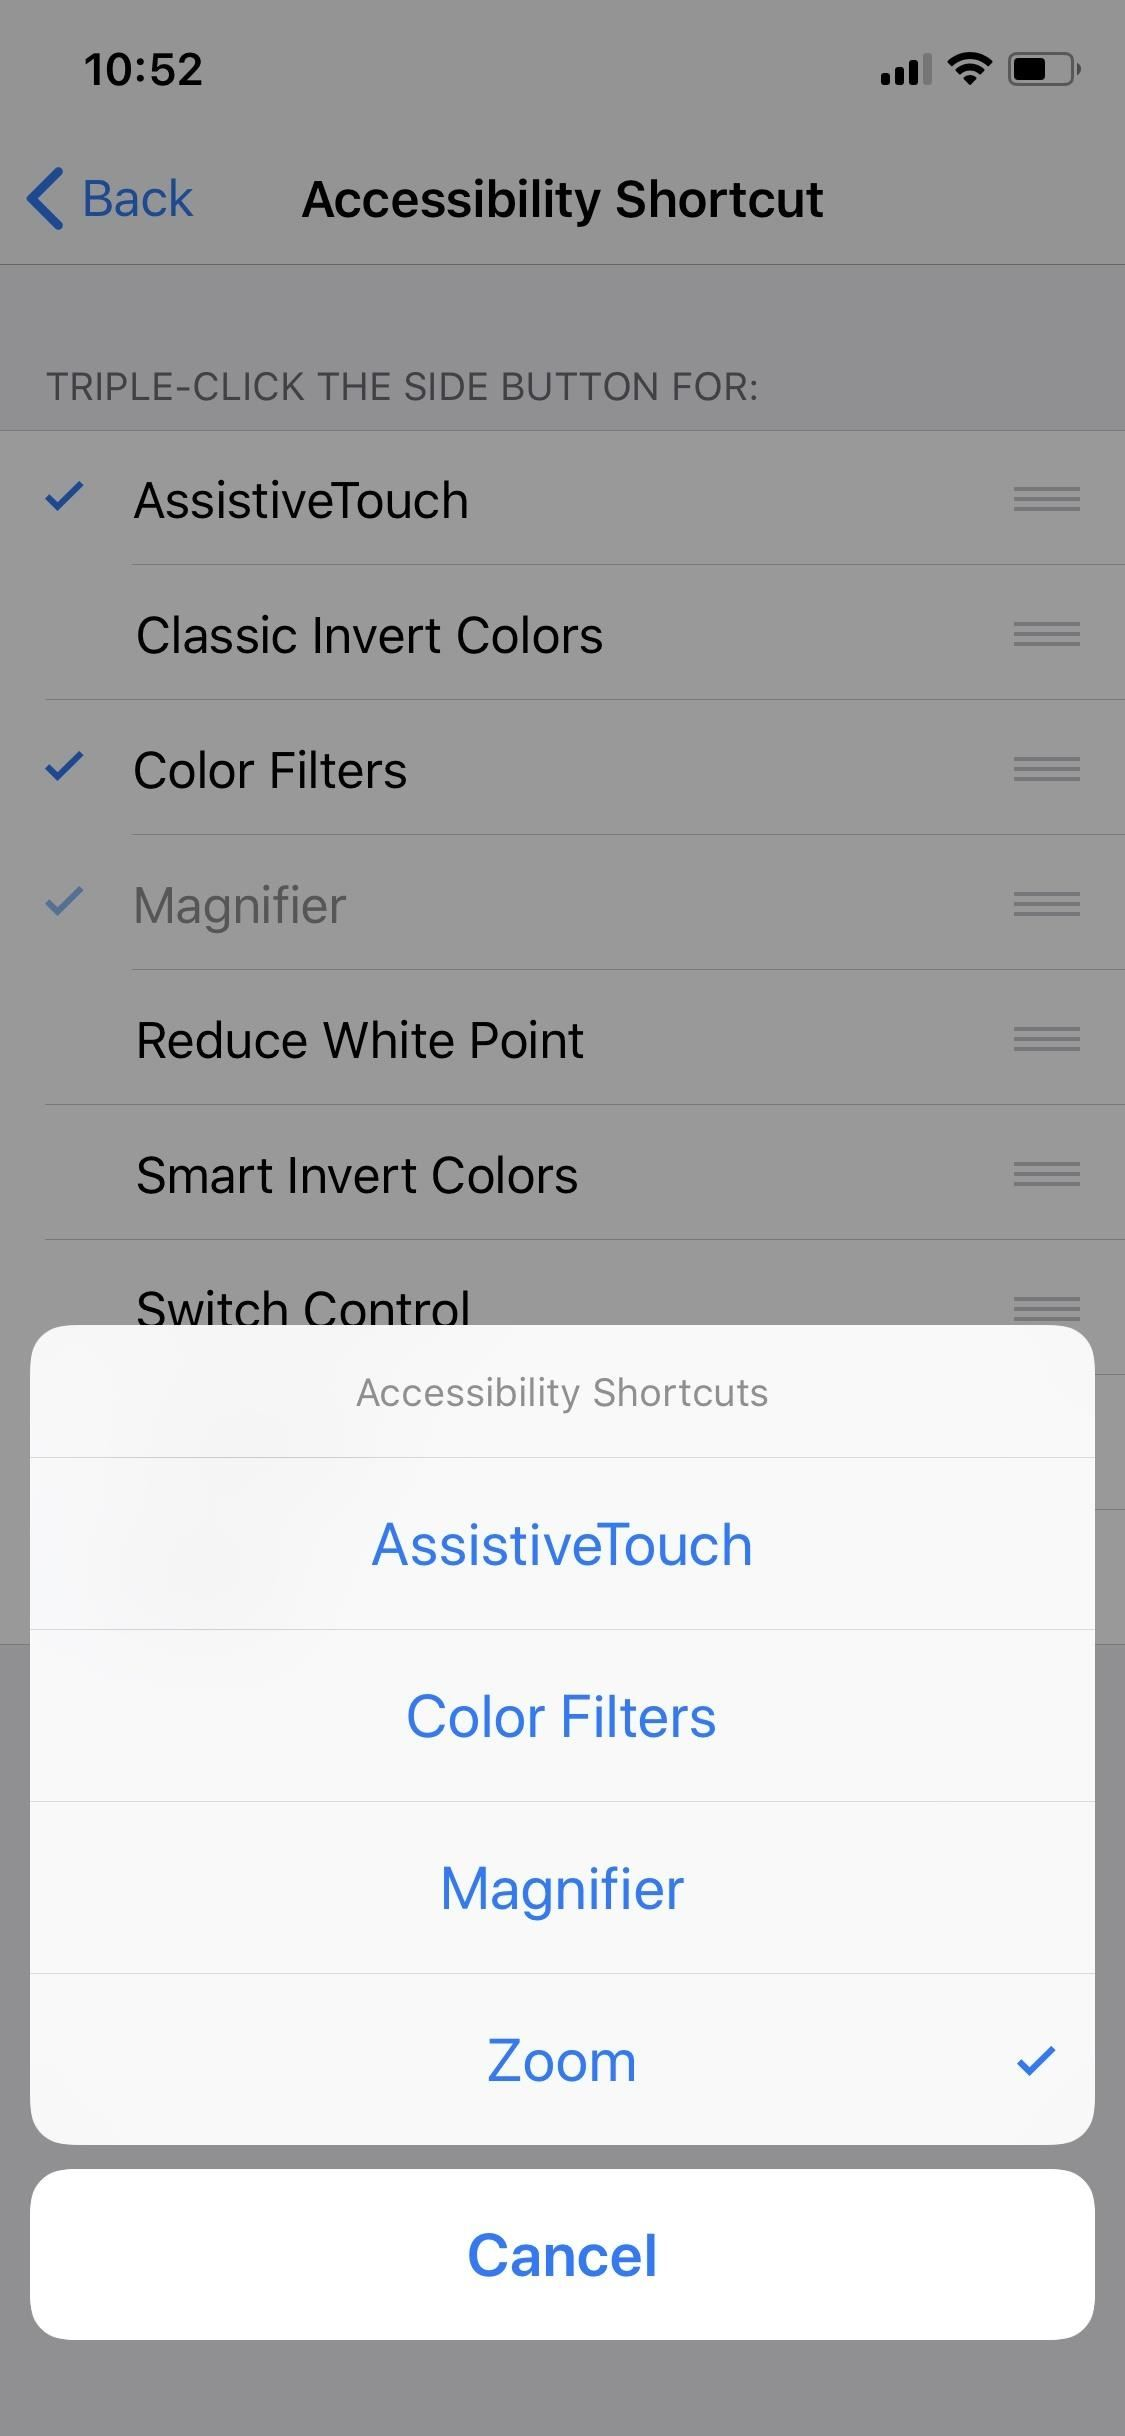 How to Open the Accessibility Shortcuts on iPhones Without a Home Button